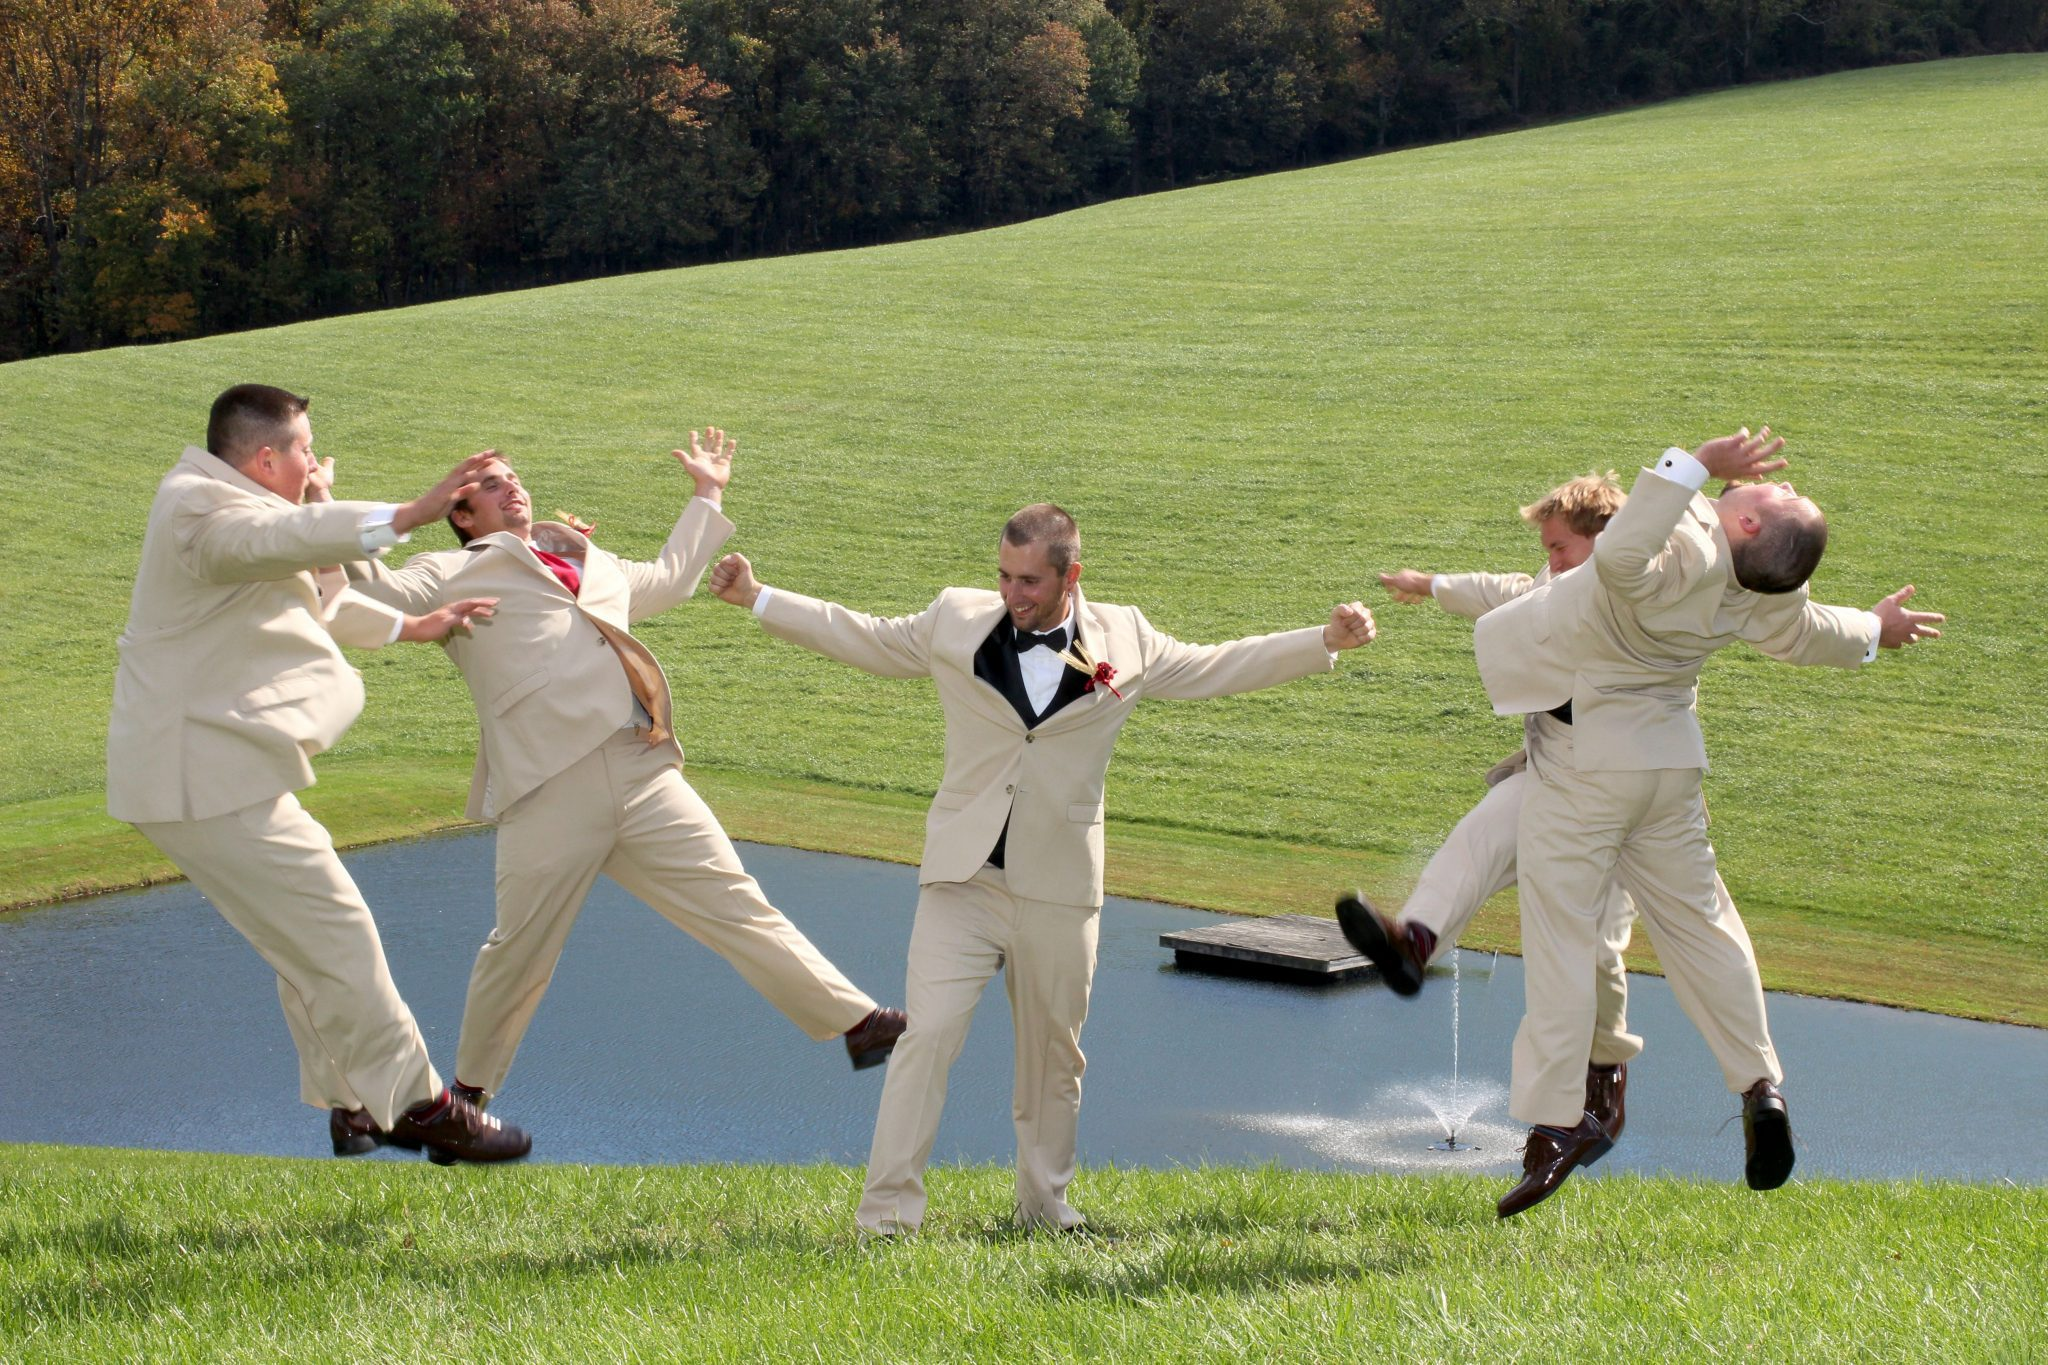 Groomsmen pose by pond on back lawn of private estate near Hagerstown Maryland